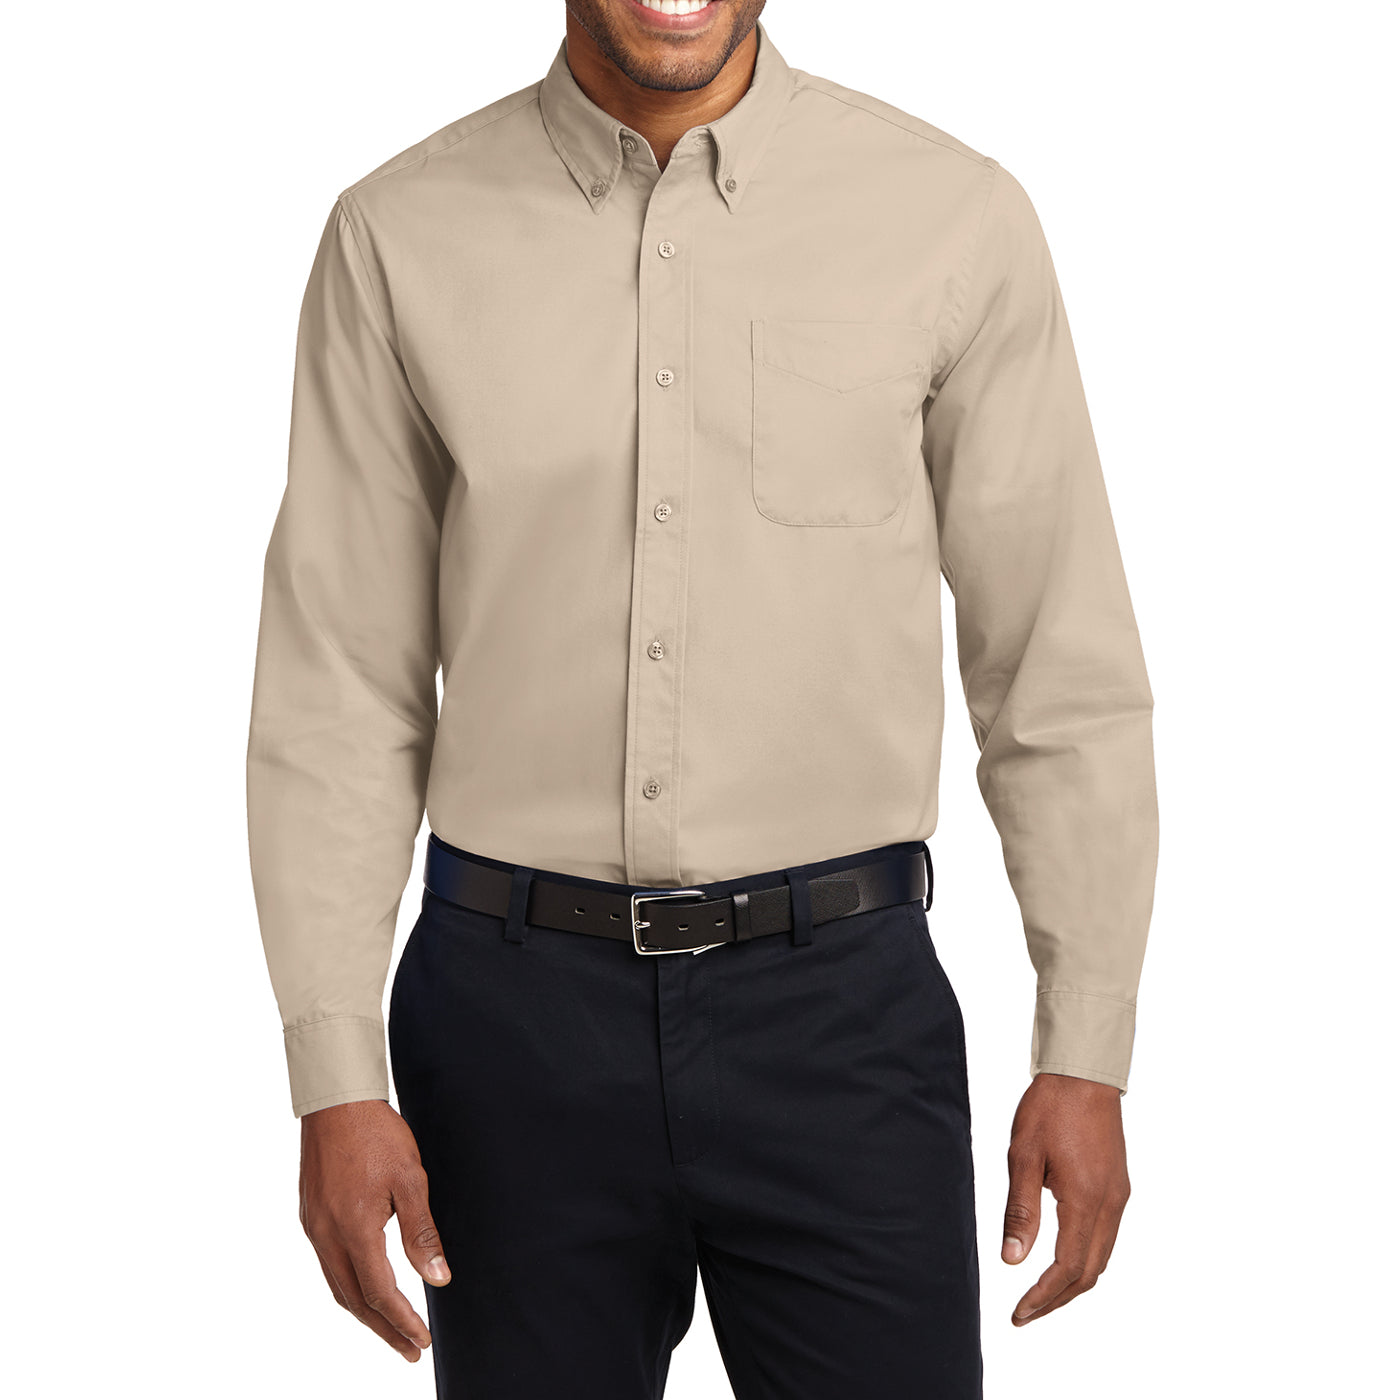 Men's Long Sleeve Easy Care Shirt - Stone - Front